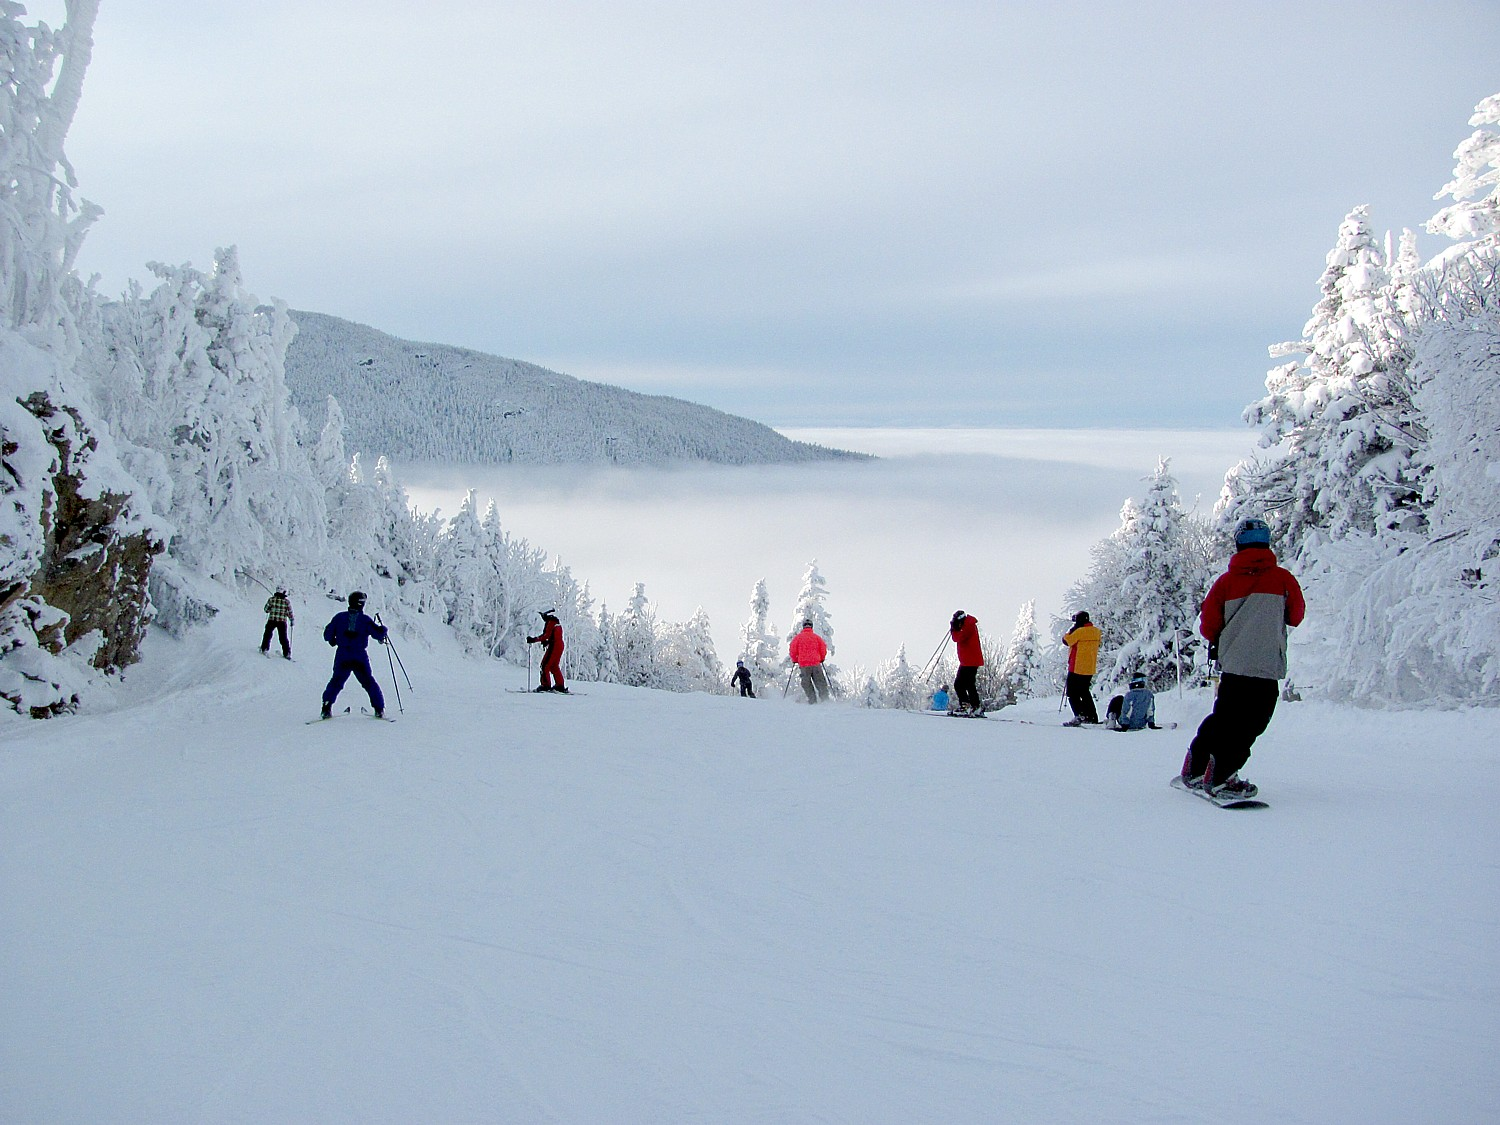 Vermont Mountain Resorts Gear Up to Enhance Guest